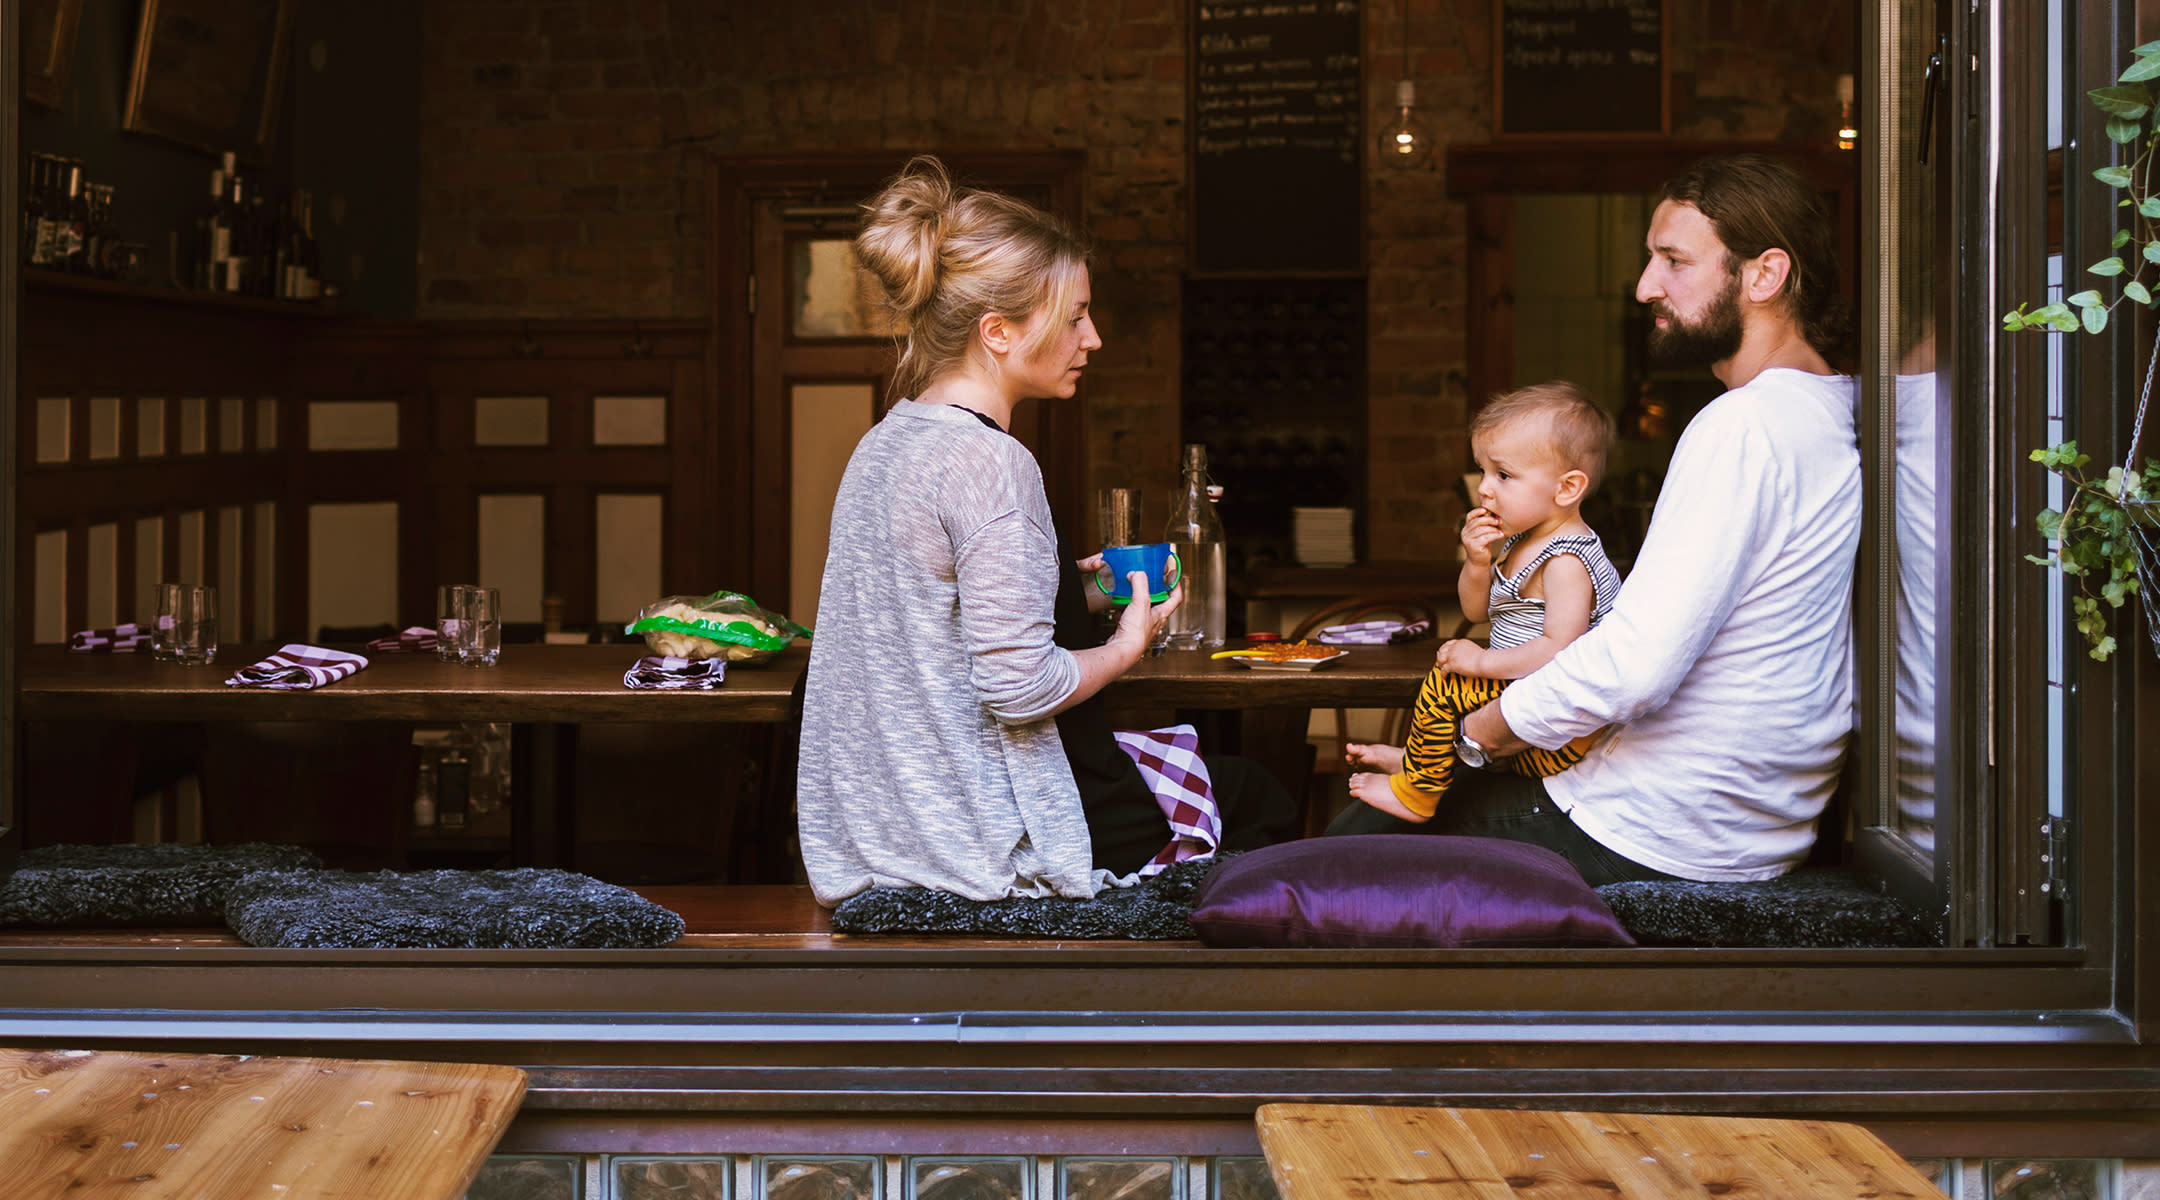 Couple eating in open air restaurant with baby